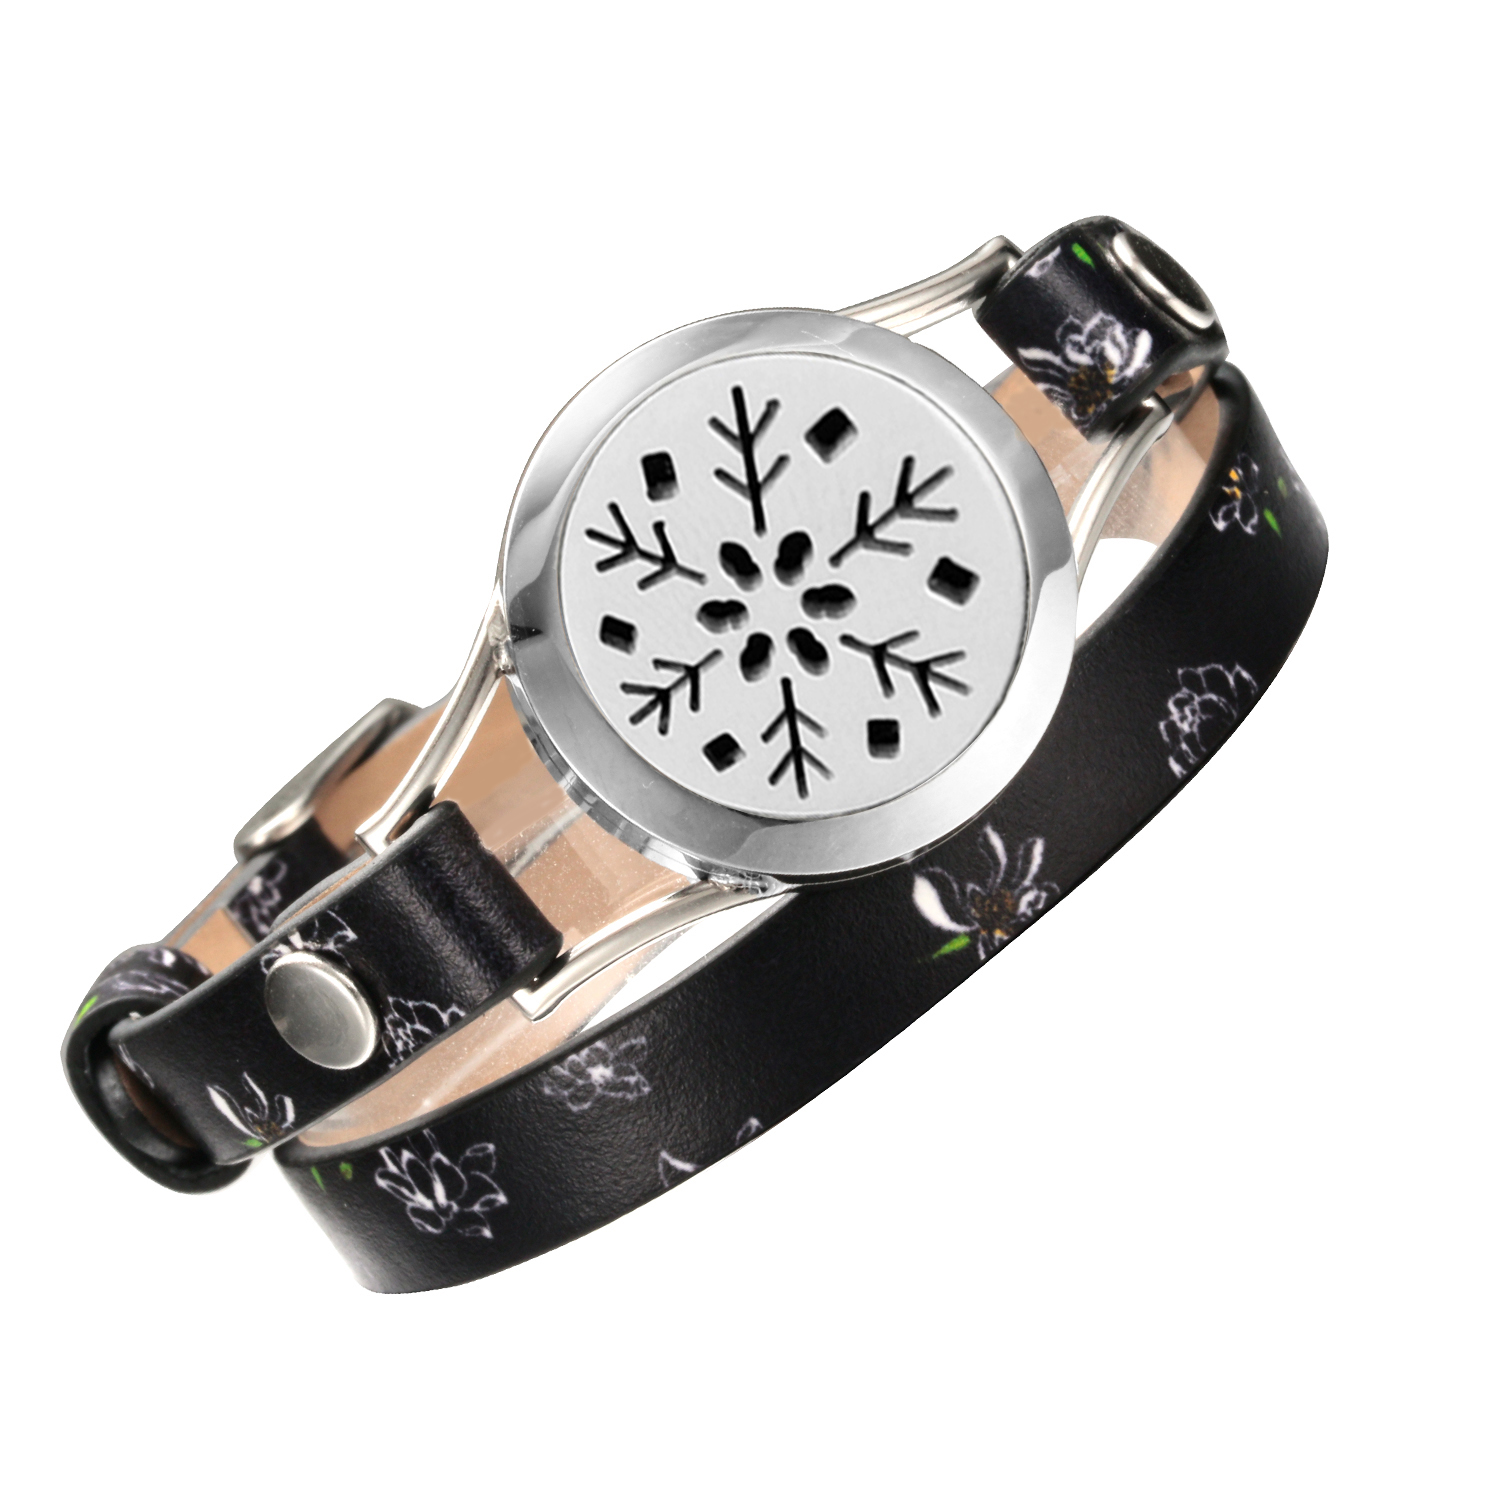 Charm Bracelets for Women diffuser snowflake Stainless Steel Real Leather locket bracelet Aromatherapy Jewelry